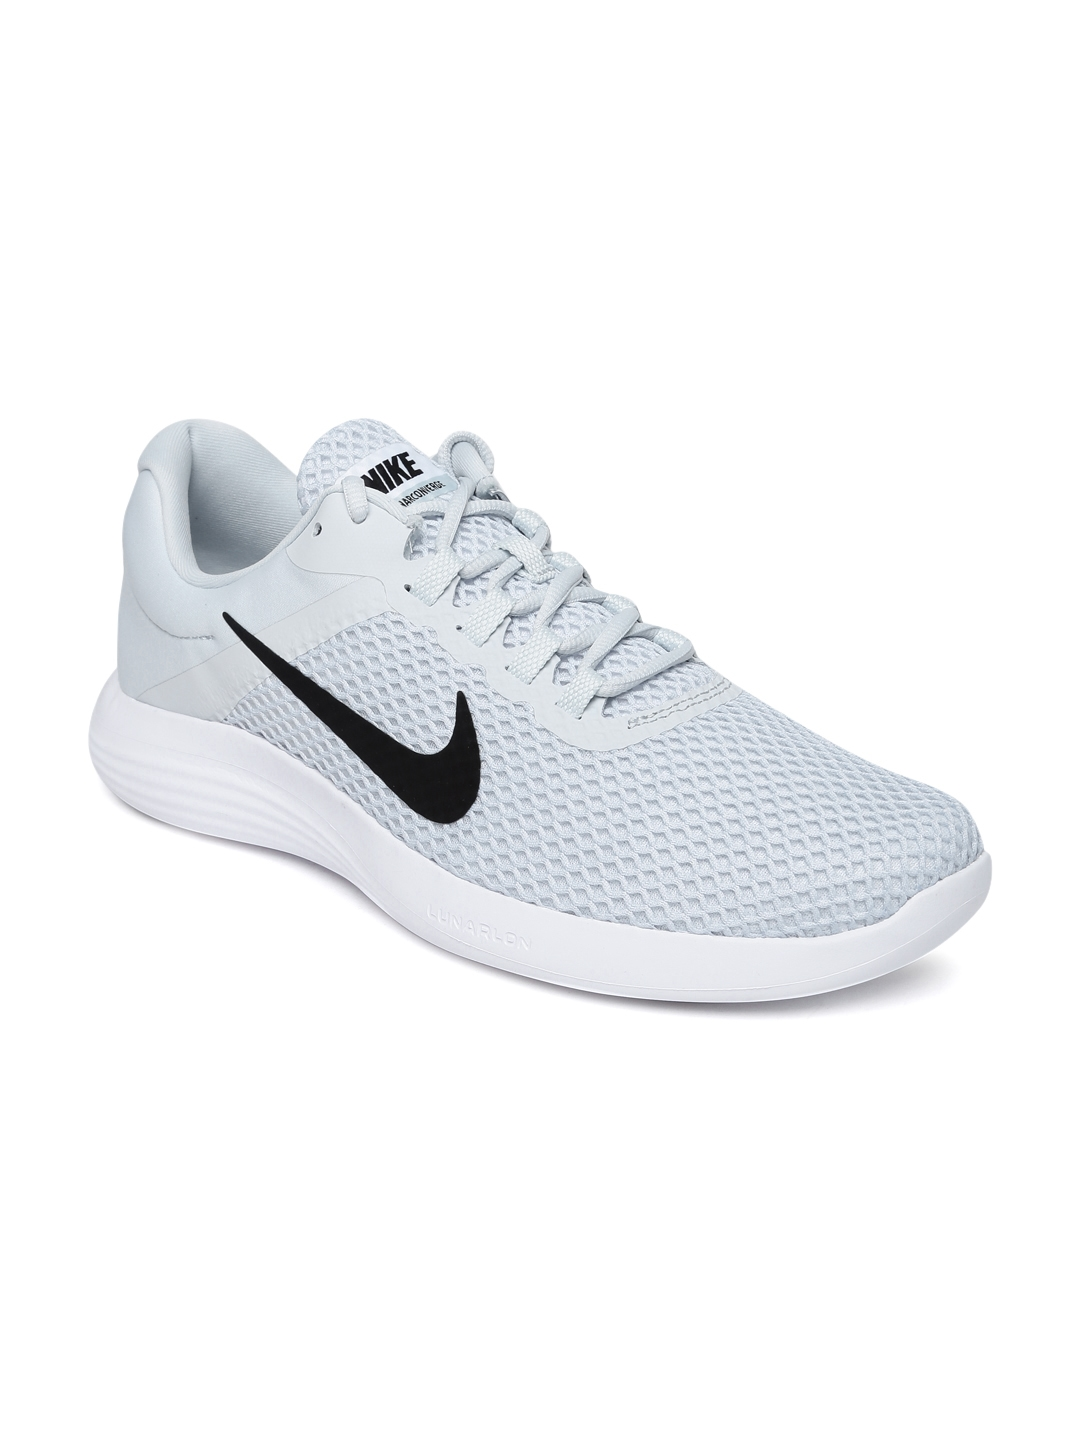 9c5c1cb07333 Buy Nike Men White Lunar Converge 2 Running Shoe - Sports Shoes for ...